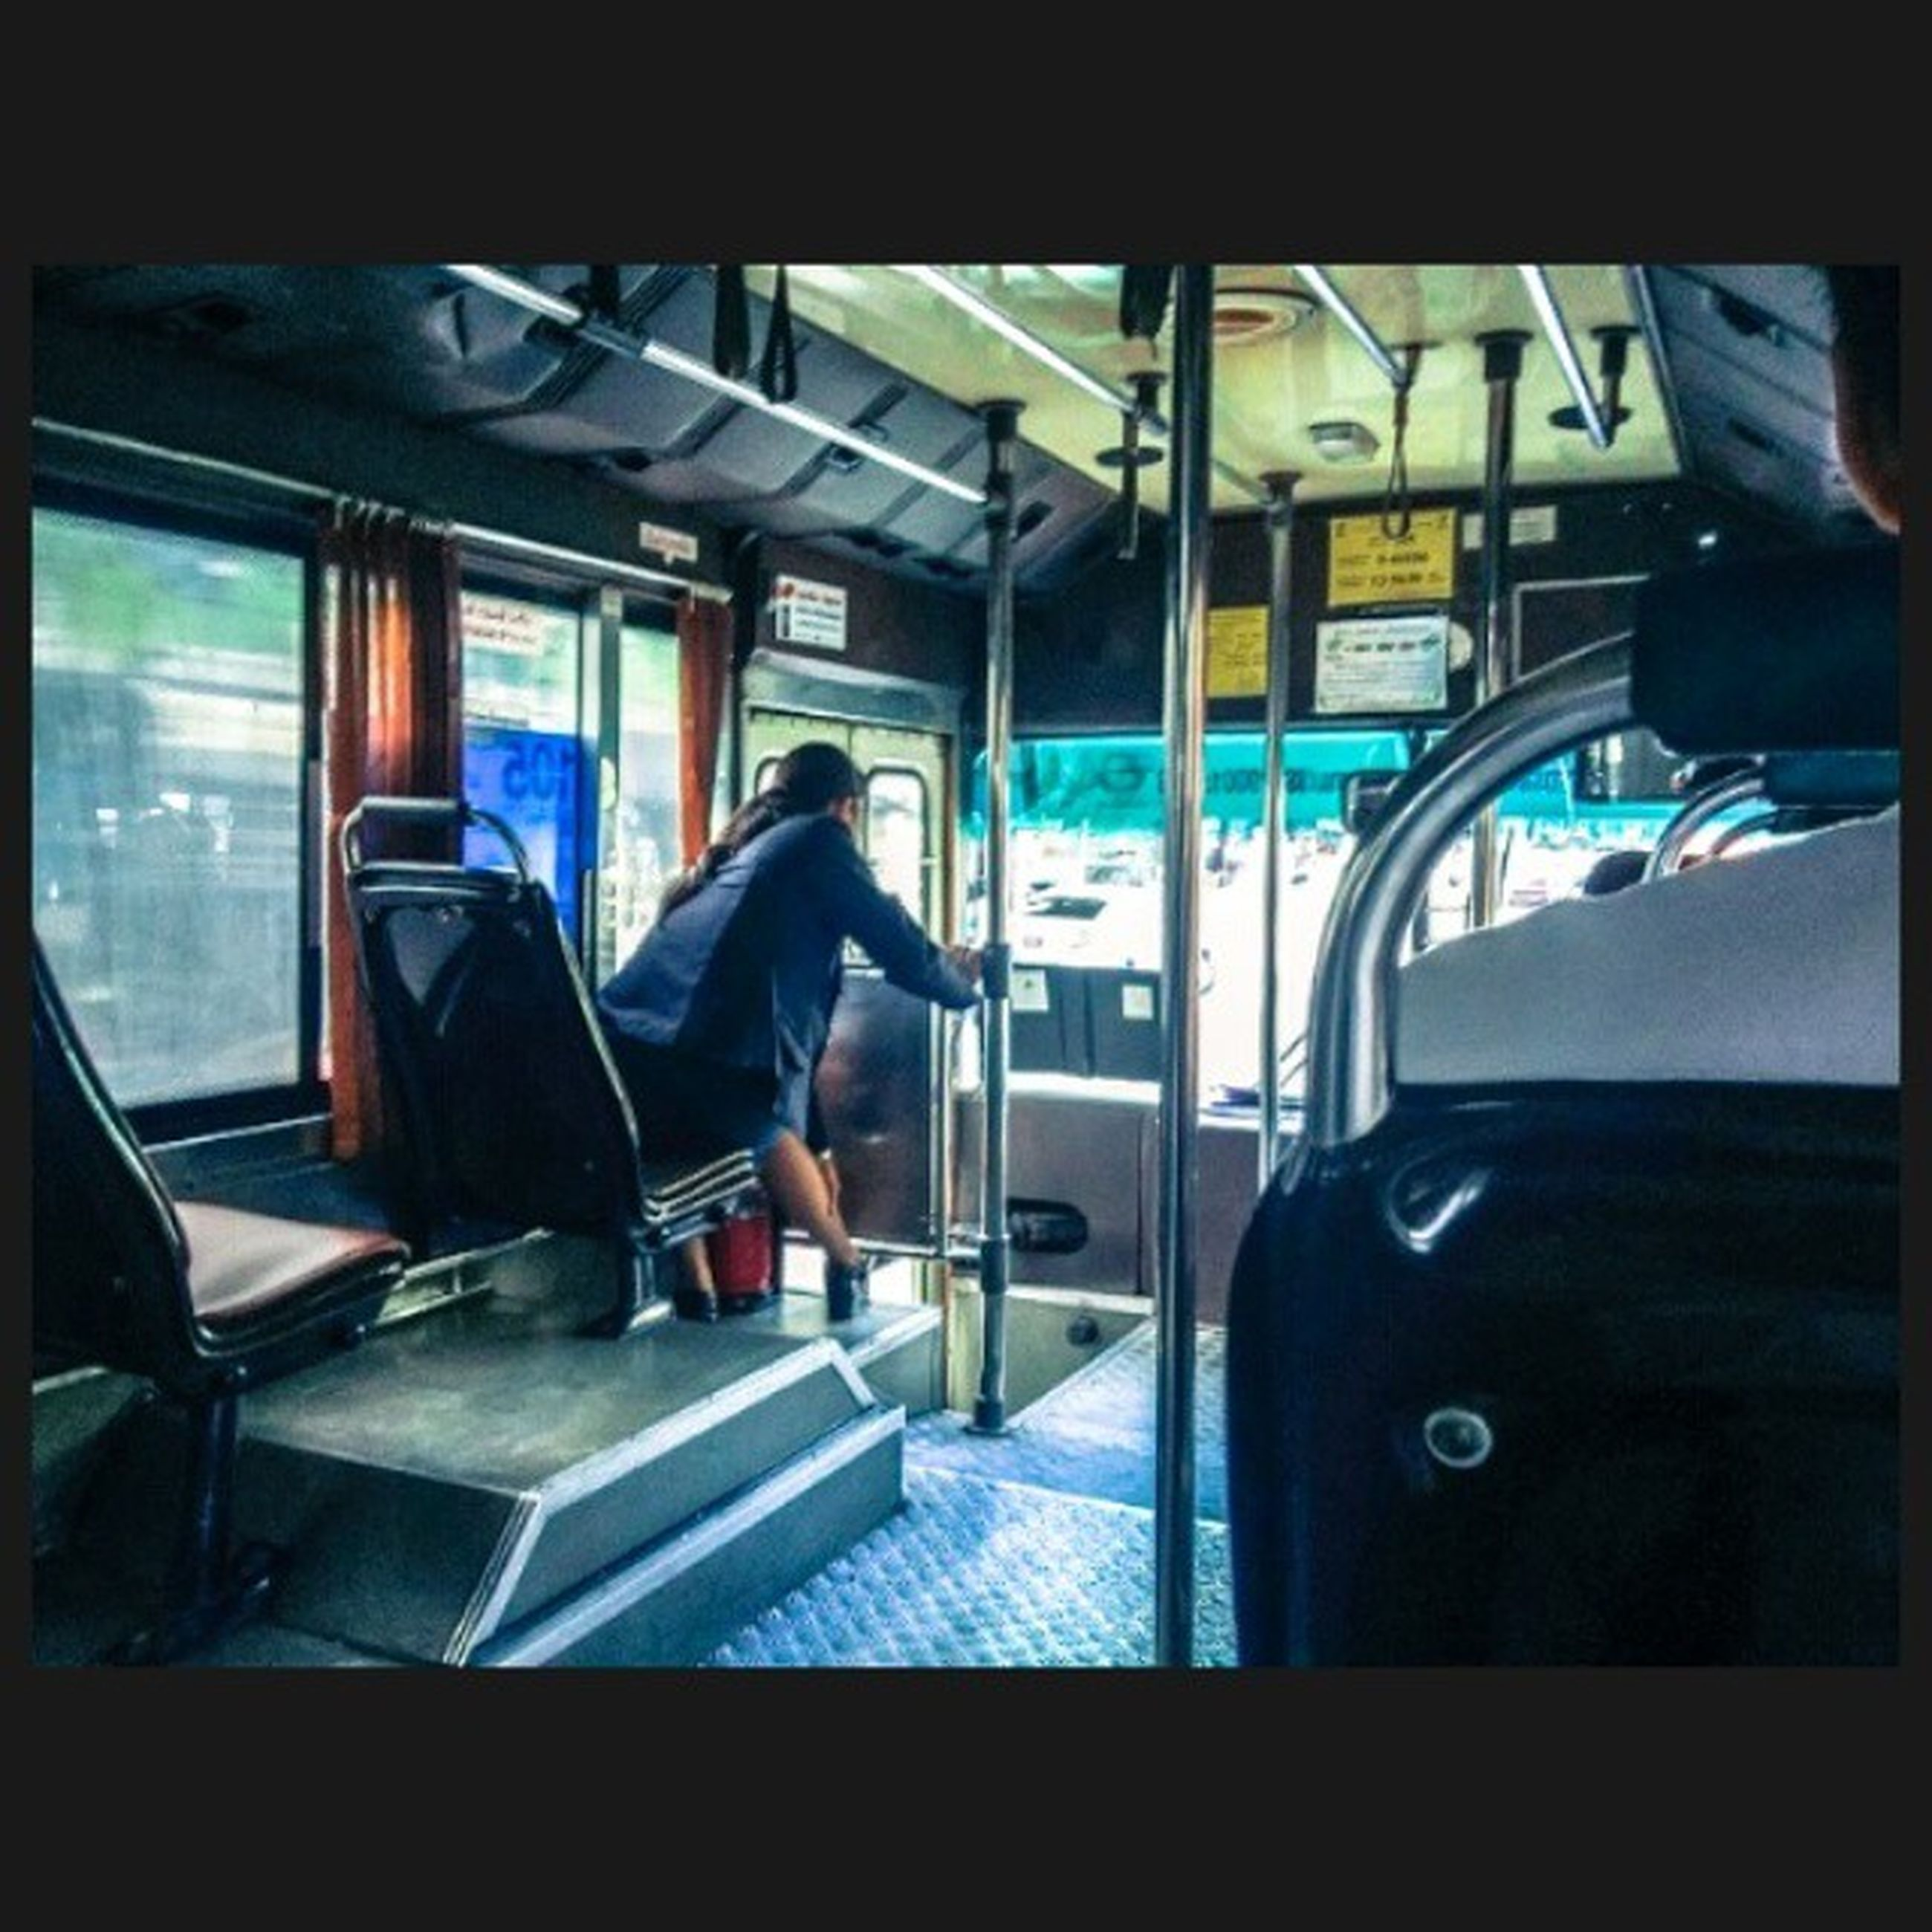 transportation, indoors, vehicle interior, mode of transport, vehicle seat, public transportation, travel, train - vehicle, passenger train, journey, bus, men, passenger, land vehicle, window, rail transportation, train, transfer print